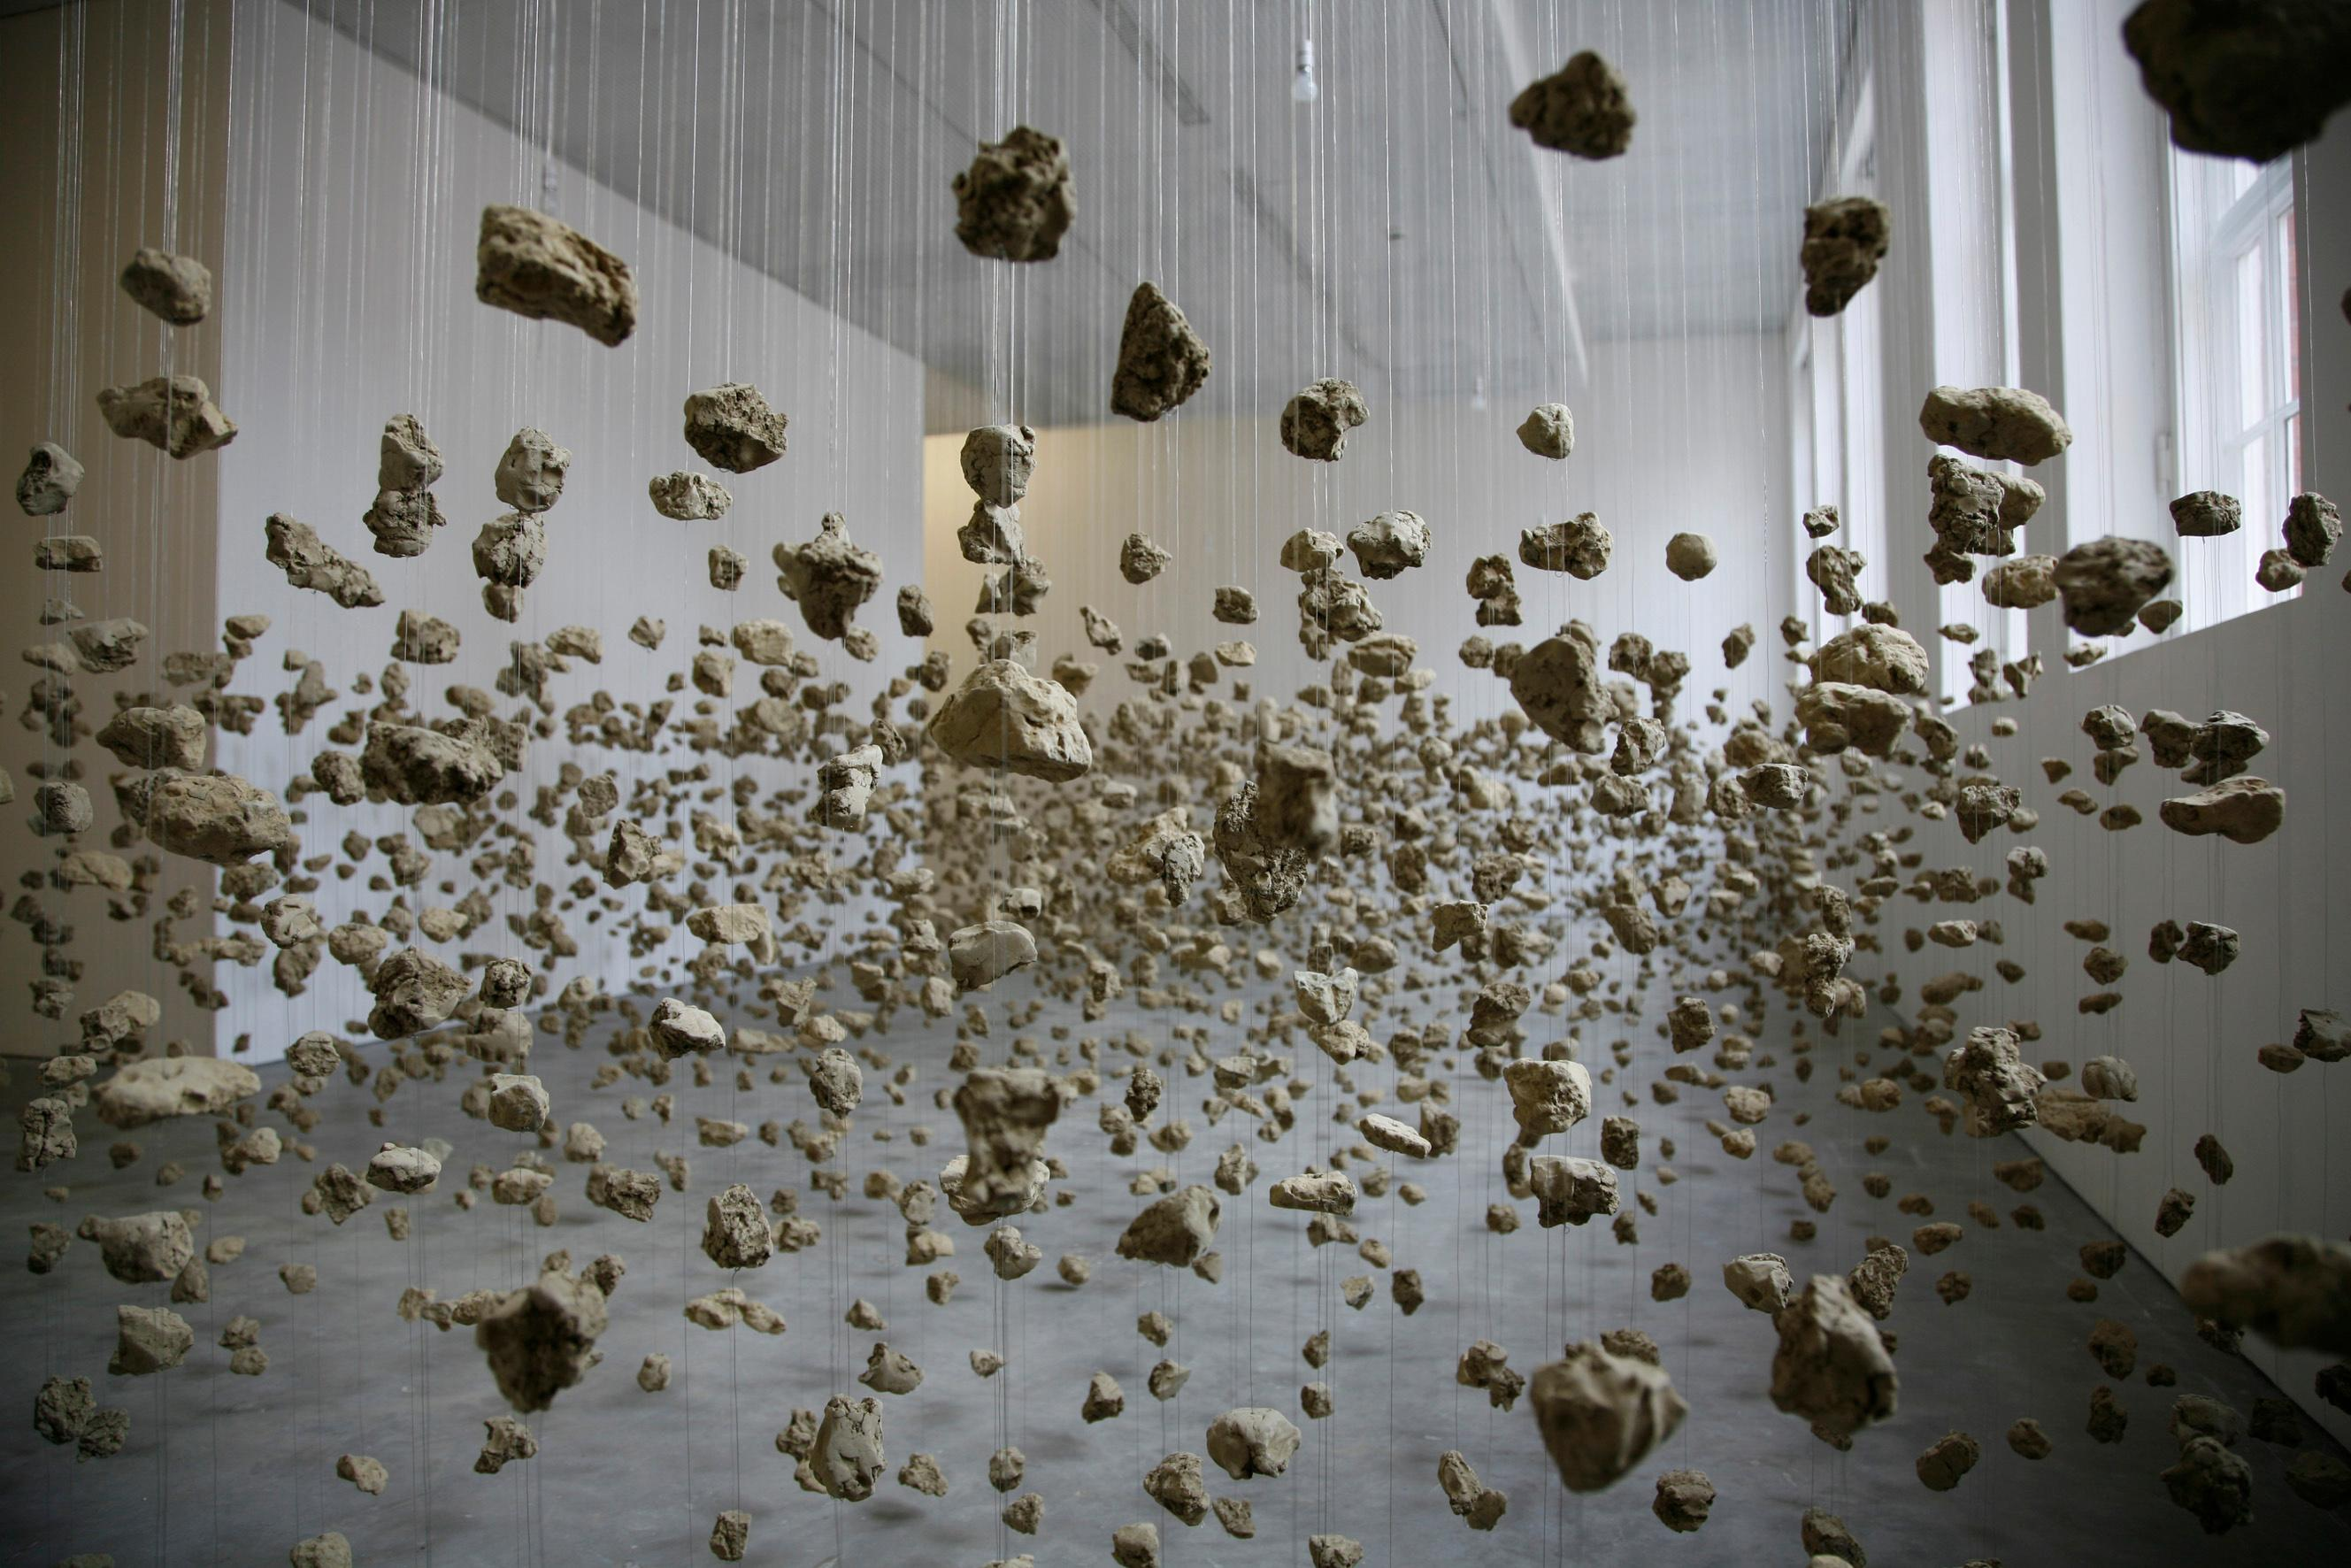 Steamrollers, explosions, and 'cartoon violence': the artistic eruptions of Cornelia Parker